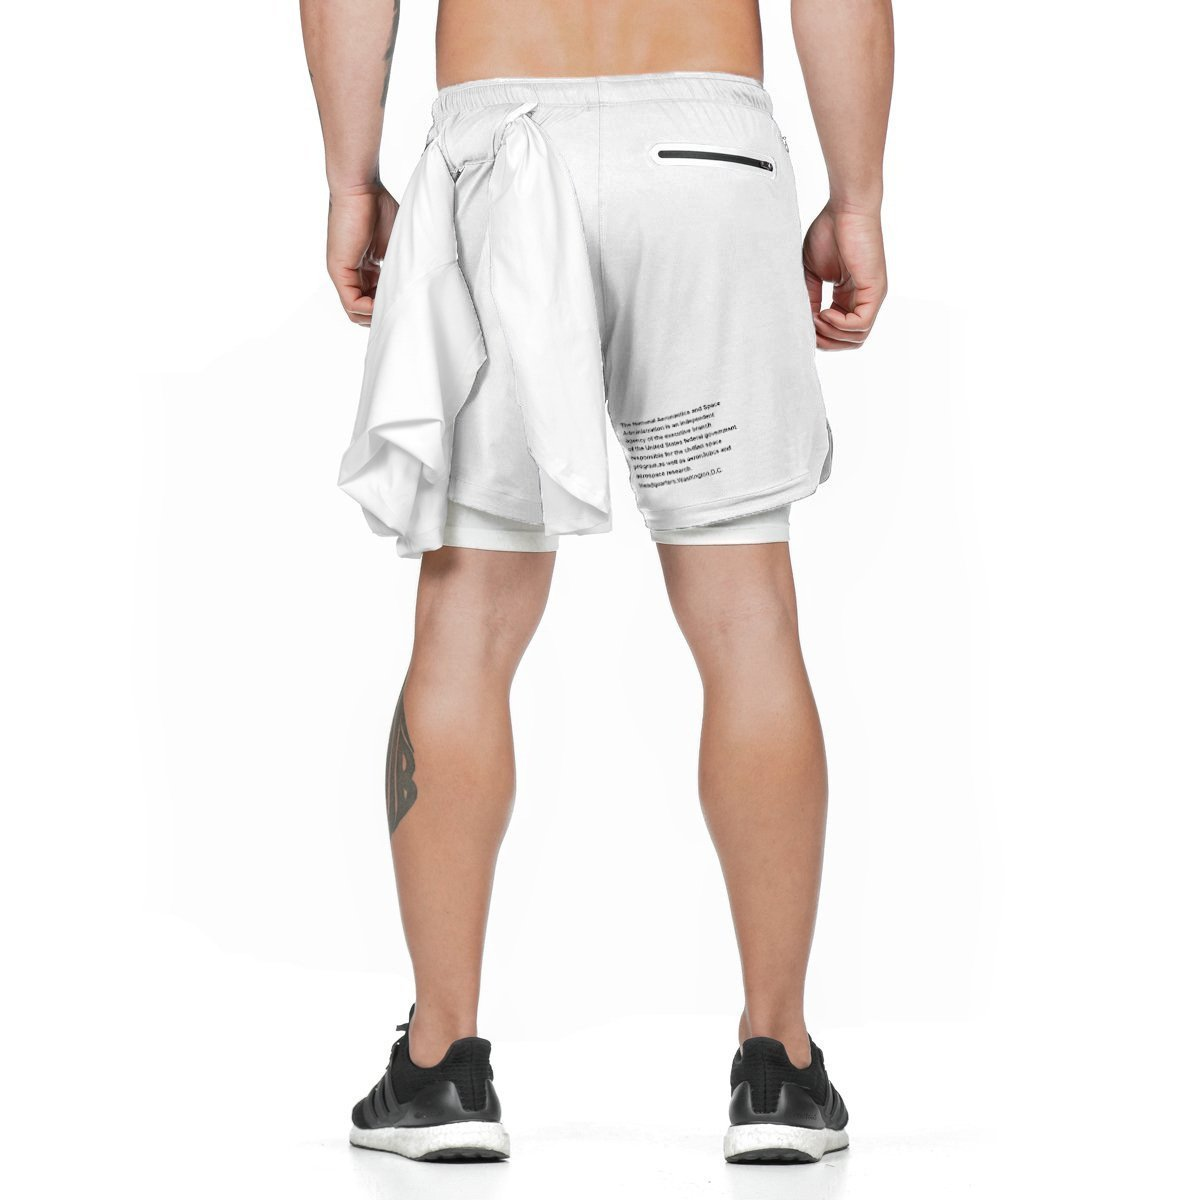 Running Shorts|Gym Shorts|Workout Shorts|Athletic Shorts|Shorts With Tower Holder|Shorts With Hidden Phone Pocket